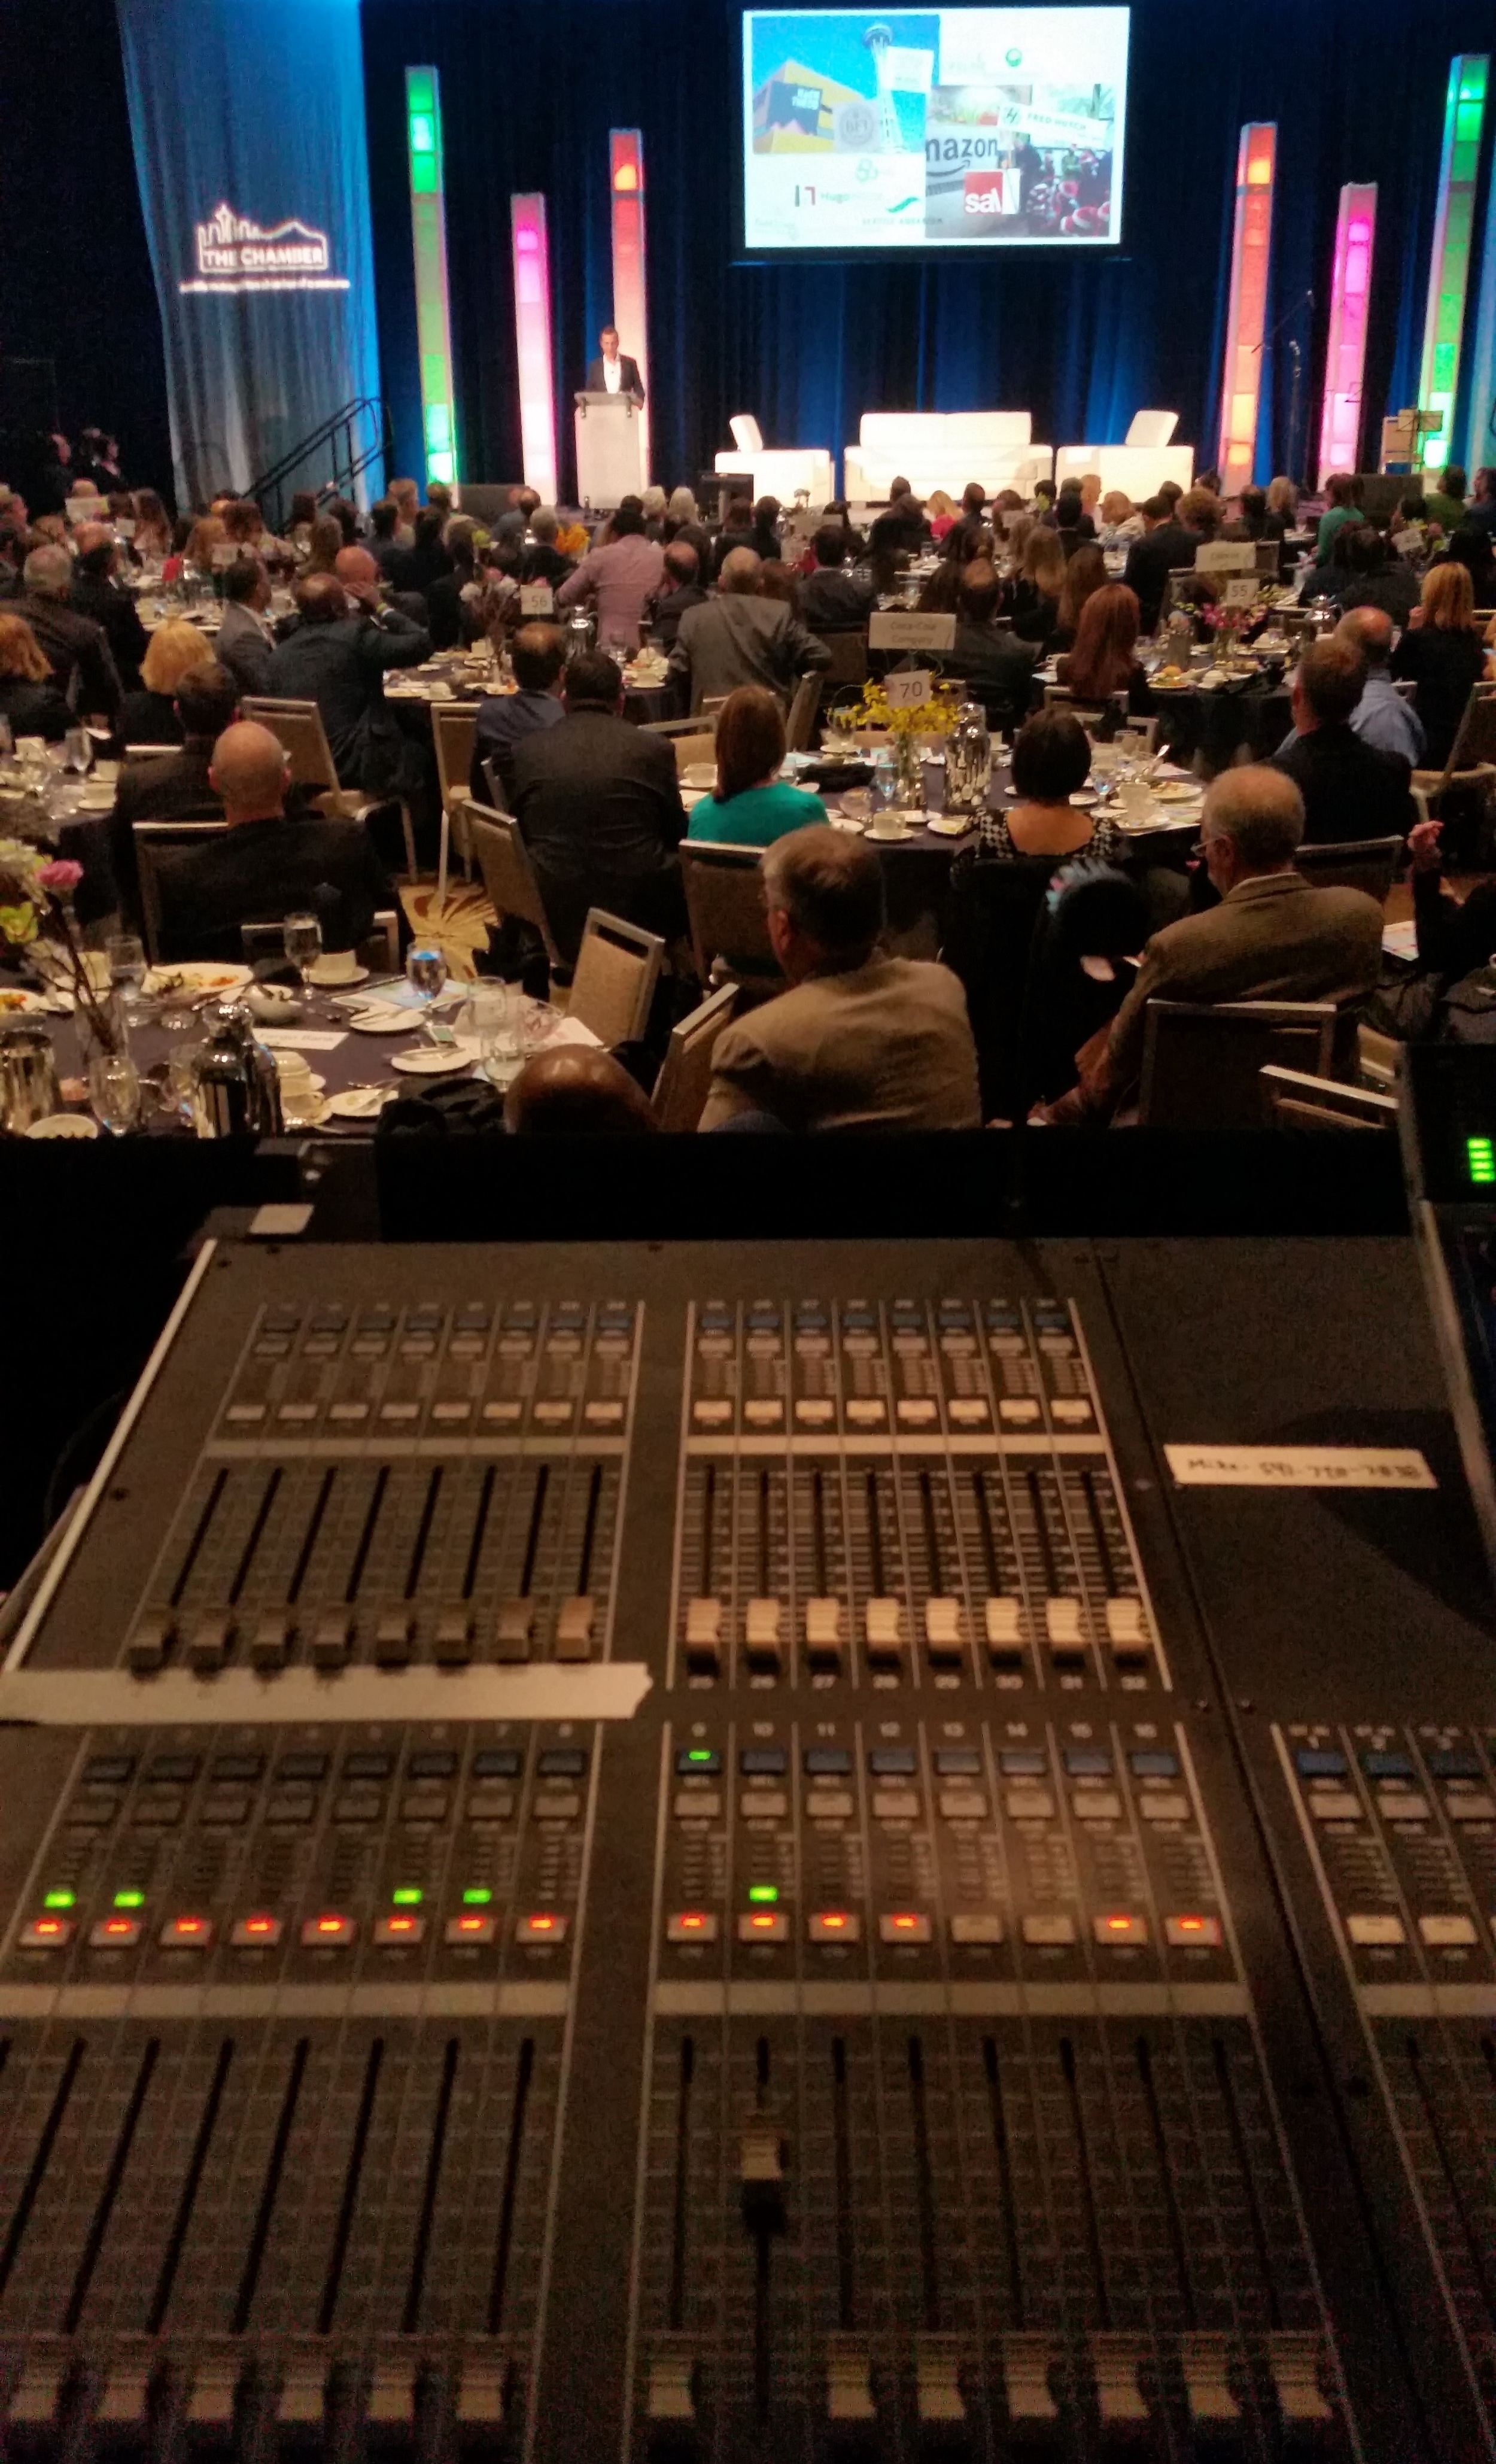 Mixing an event for the Seattle Chamber of Commerce